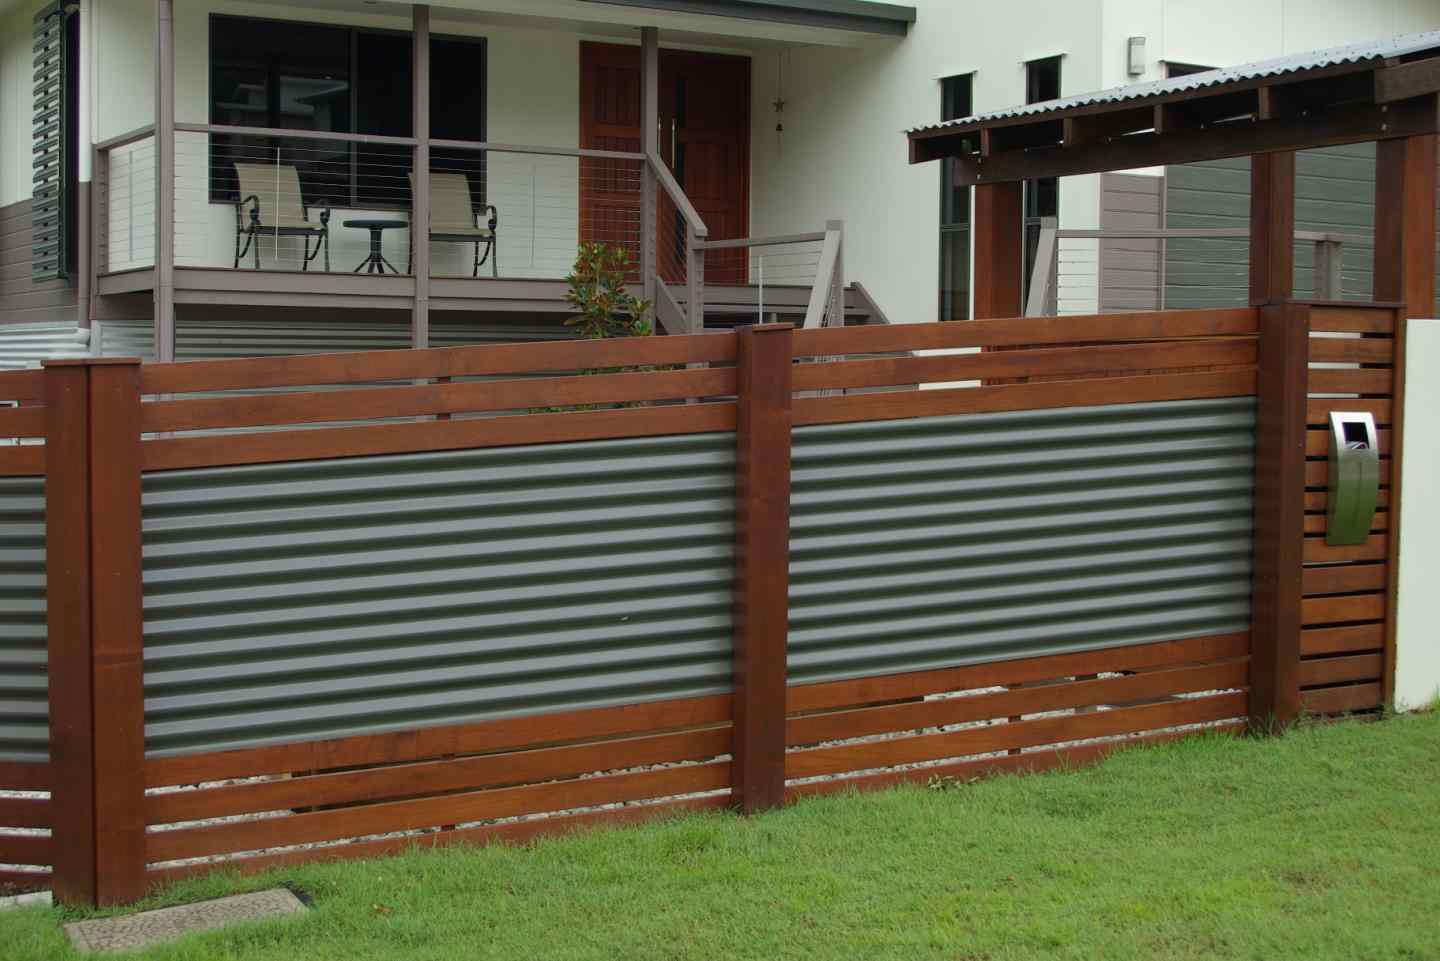 Cheap Fence Ideas For Dogs That Dig for Small Dogs Run